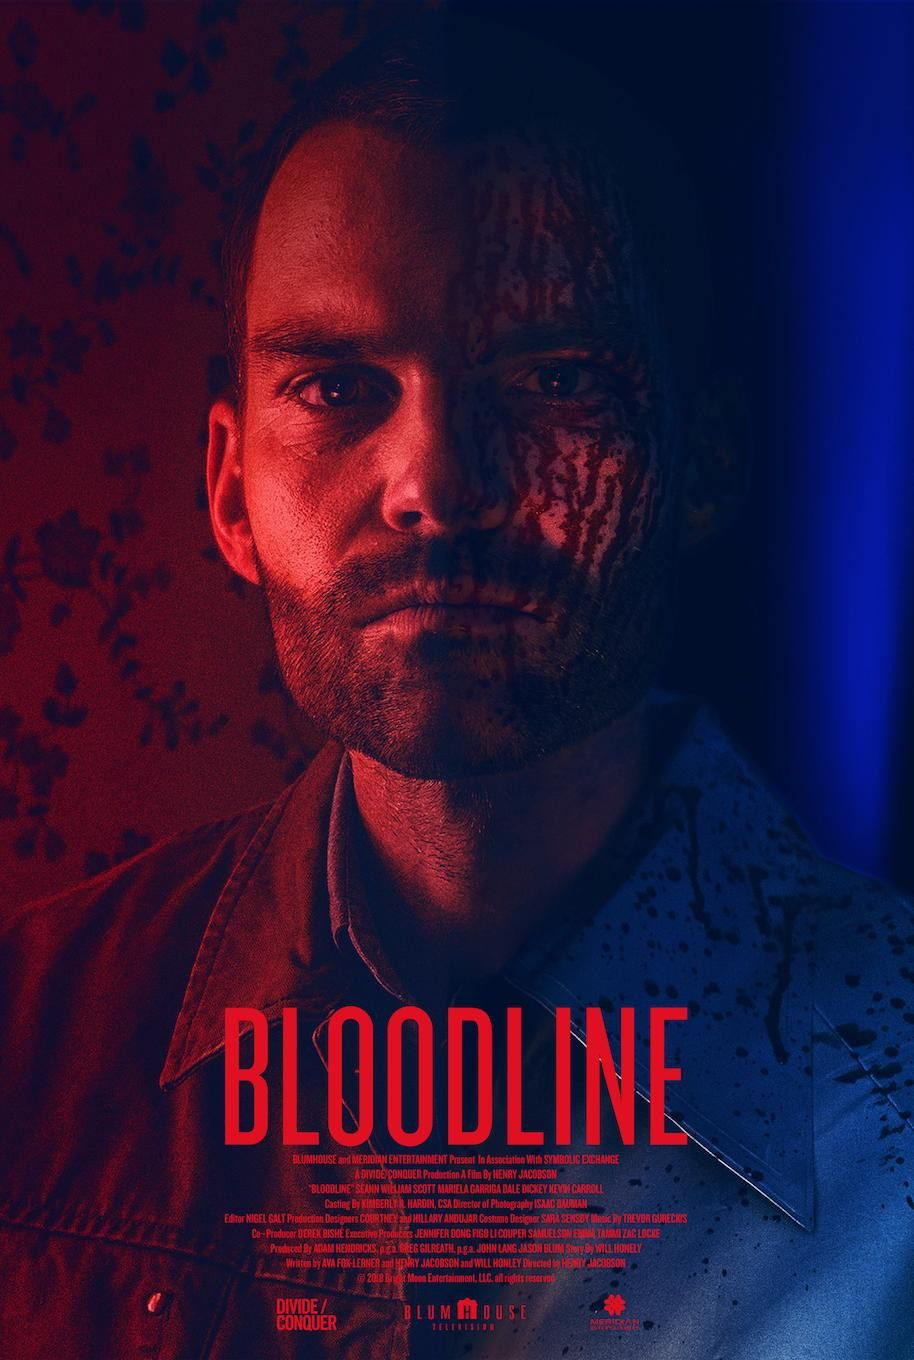 Bloodline (2018) - film poster